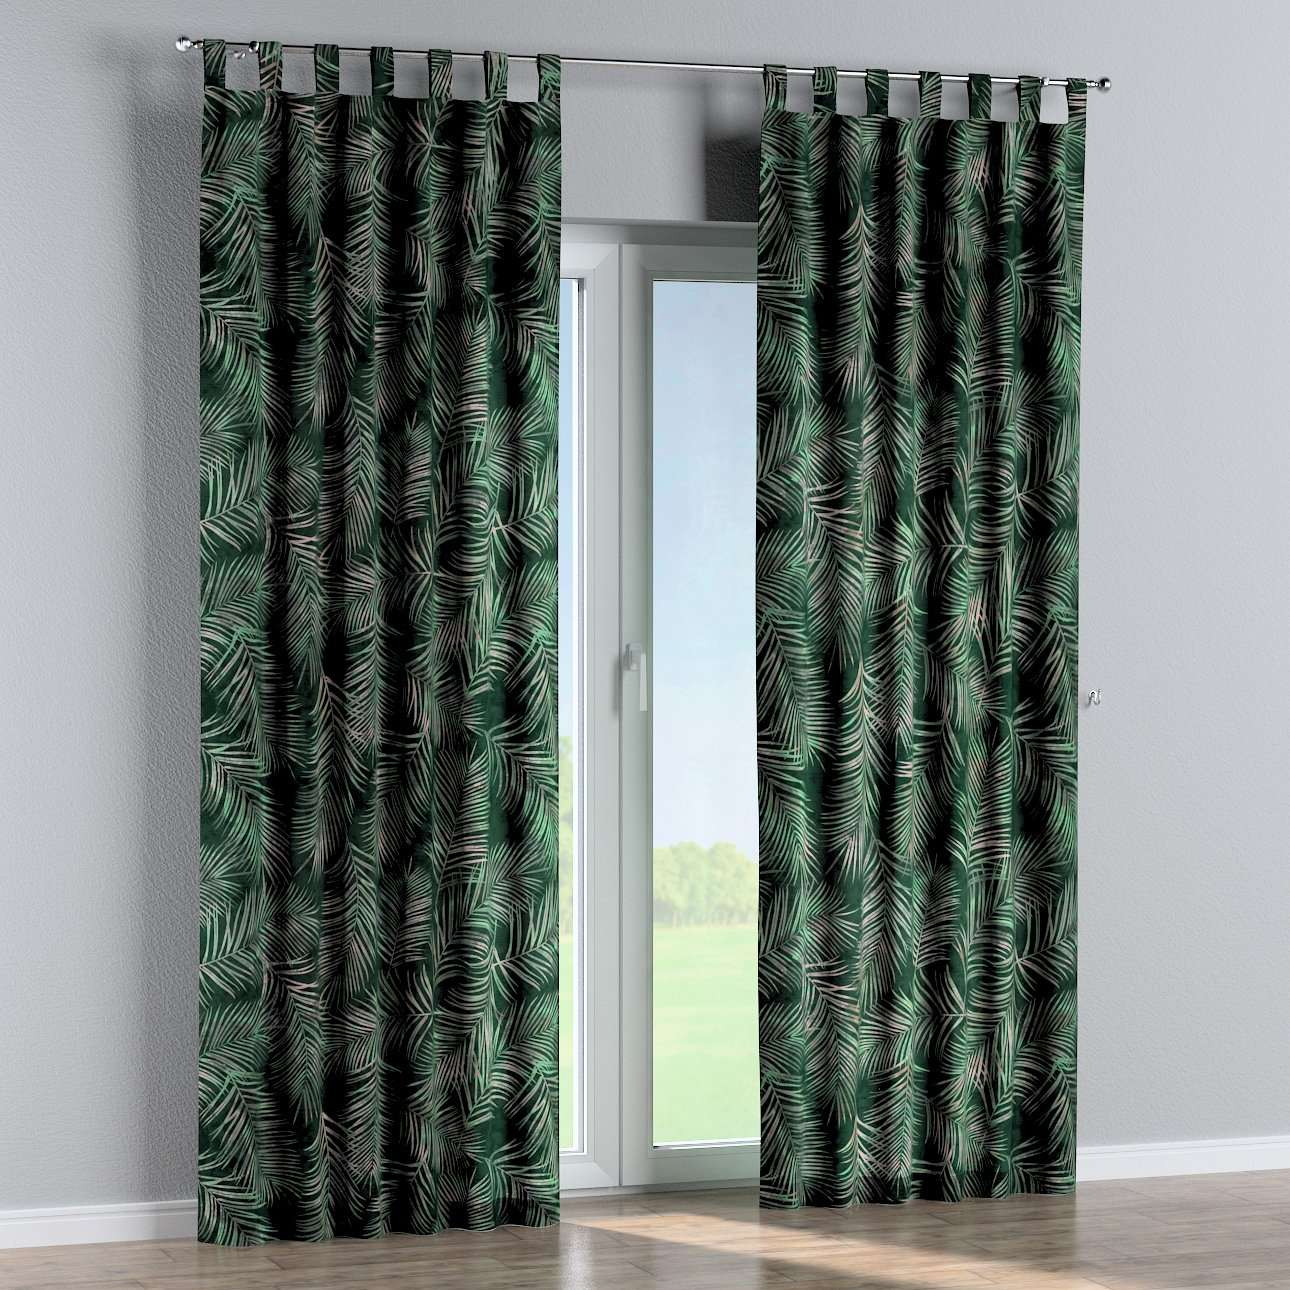 Tab top curtains in collection Velvet, fabric: 704-21